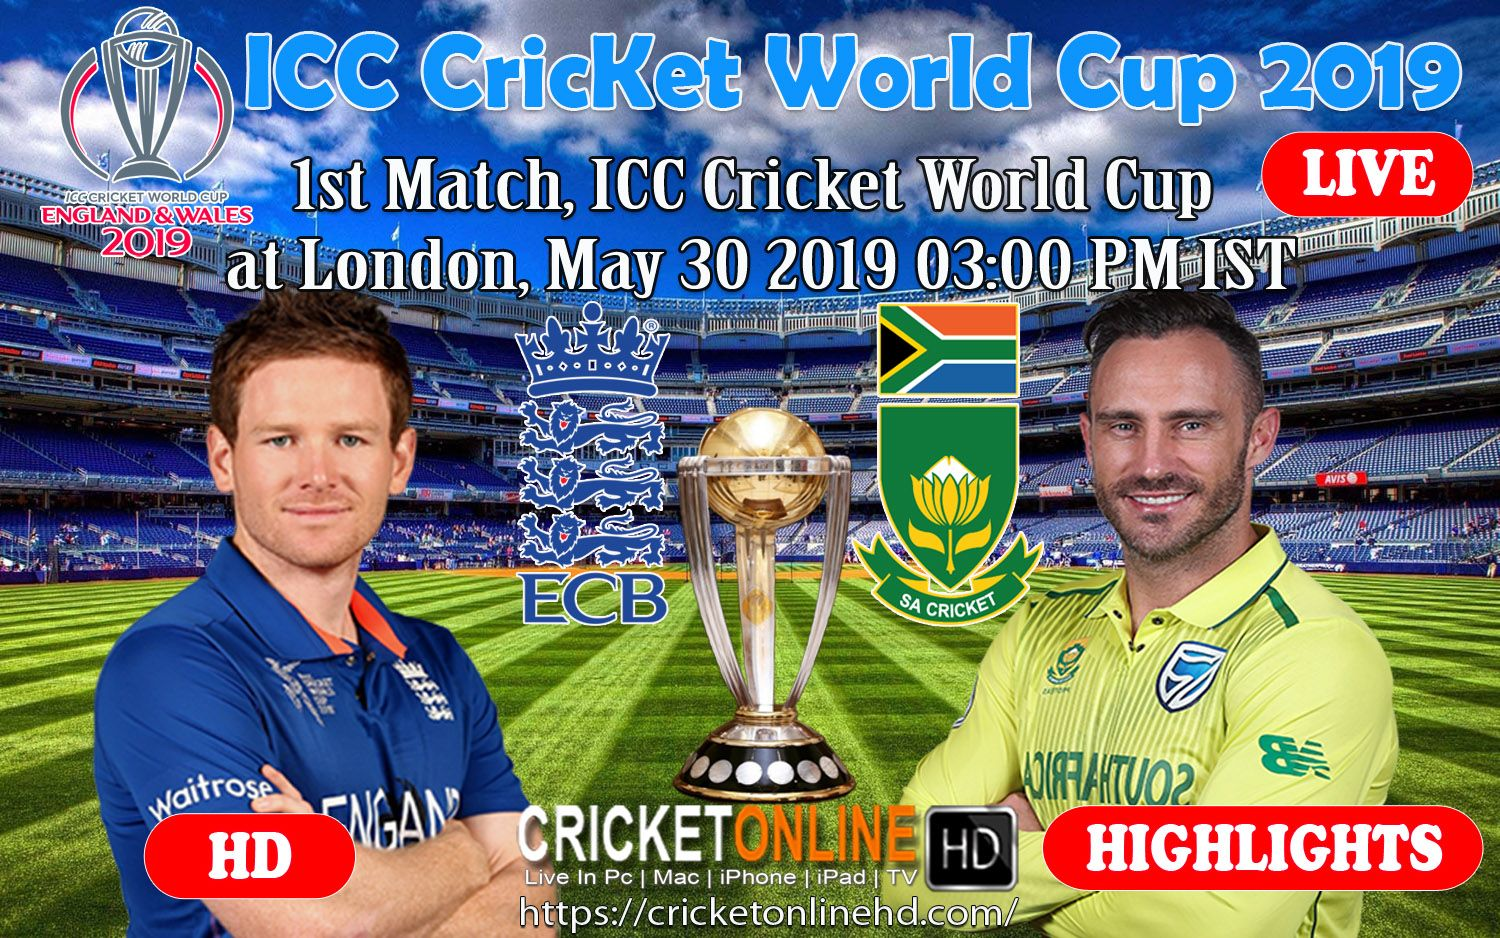 Pin On Icc Cricket World Cup 2019 Schedule Match Timings Venue Details